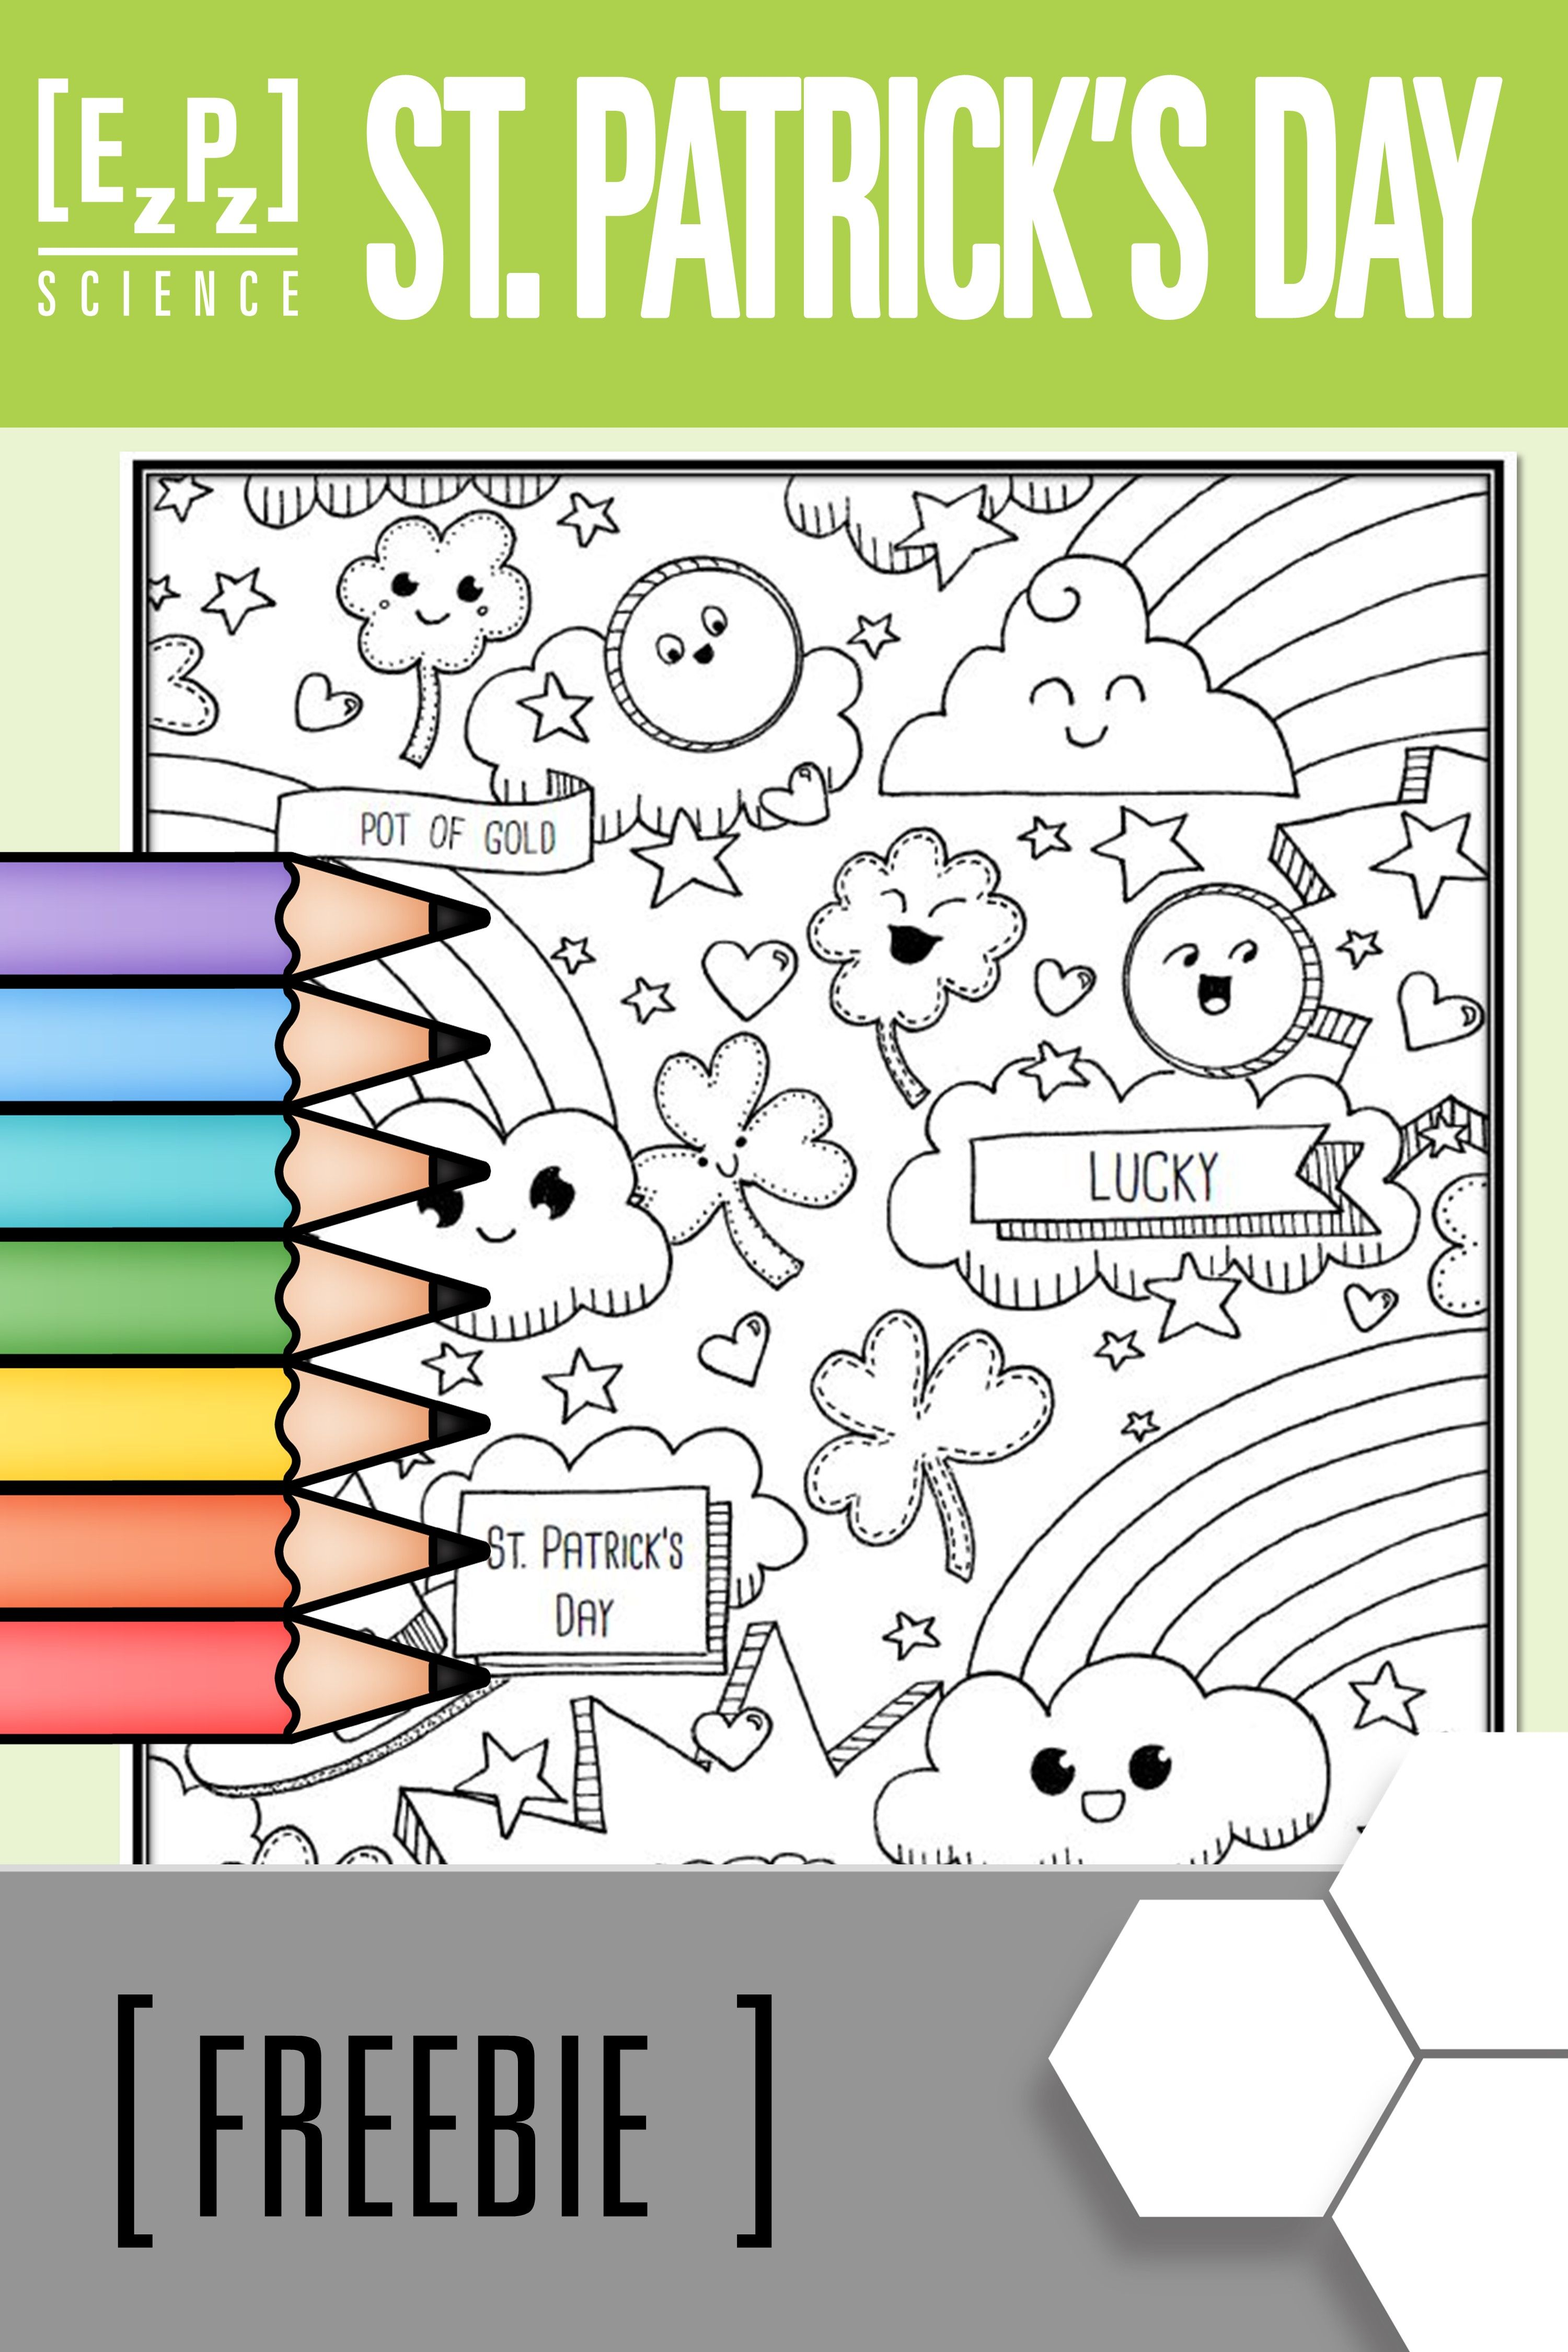 Rainbow Coloring Page ~ Kids dream of rainbows with pots of gold ... | 4500x3000